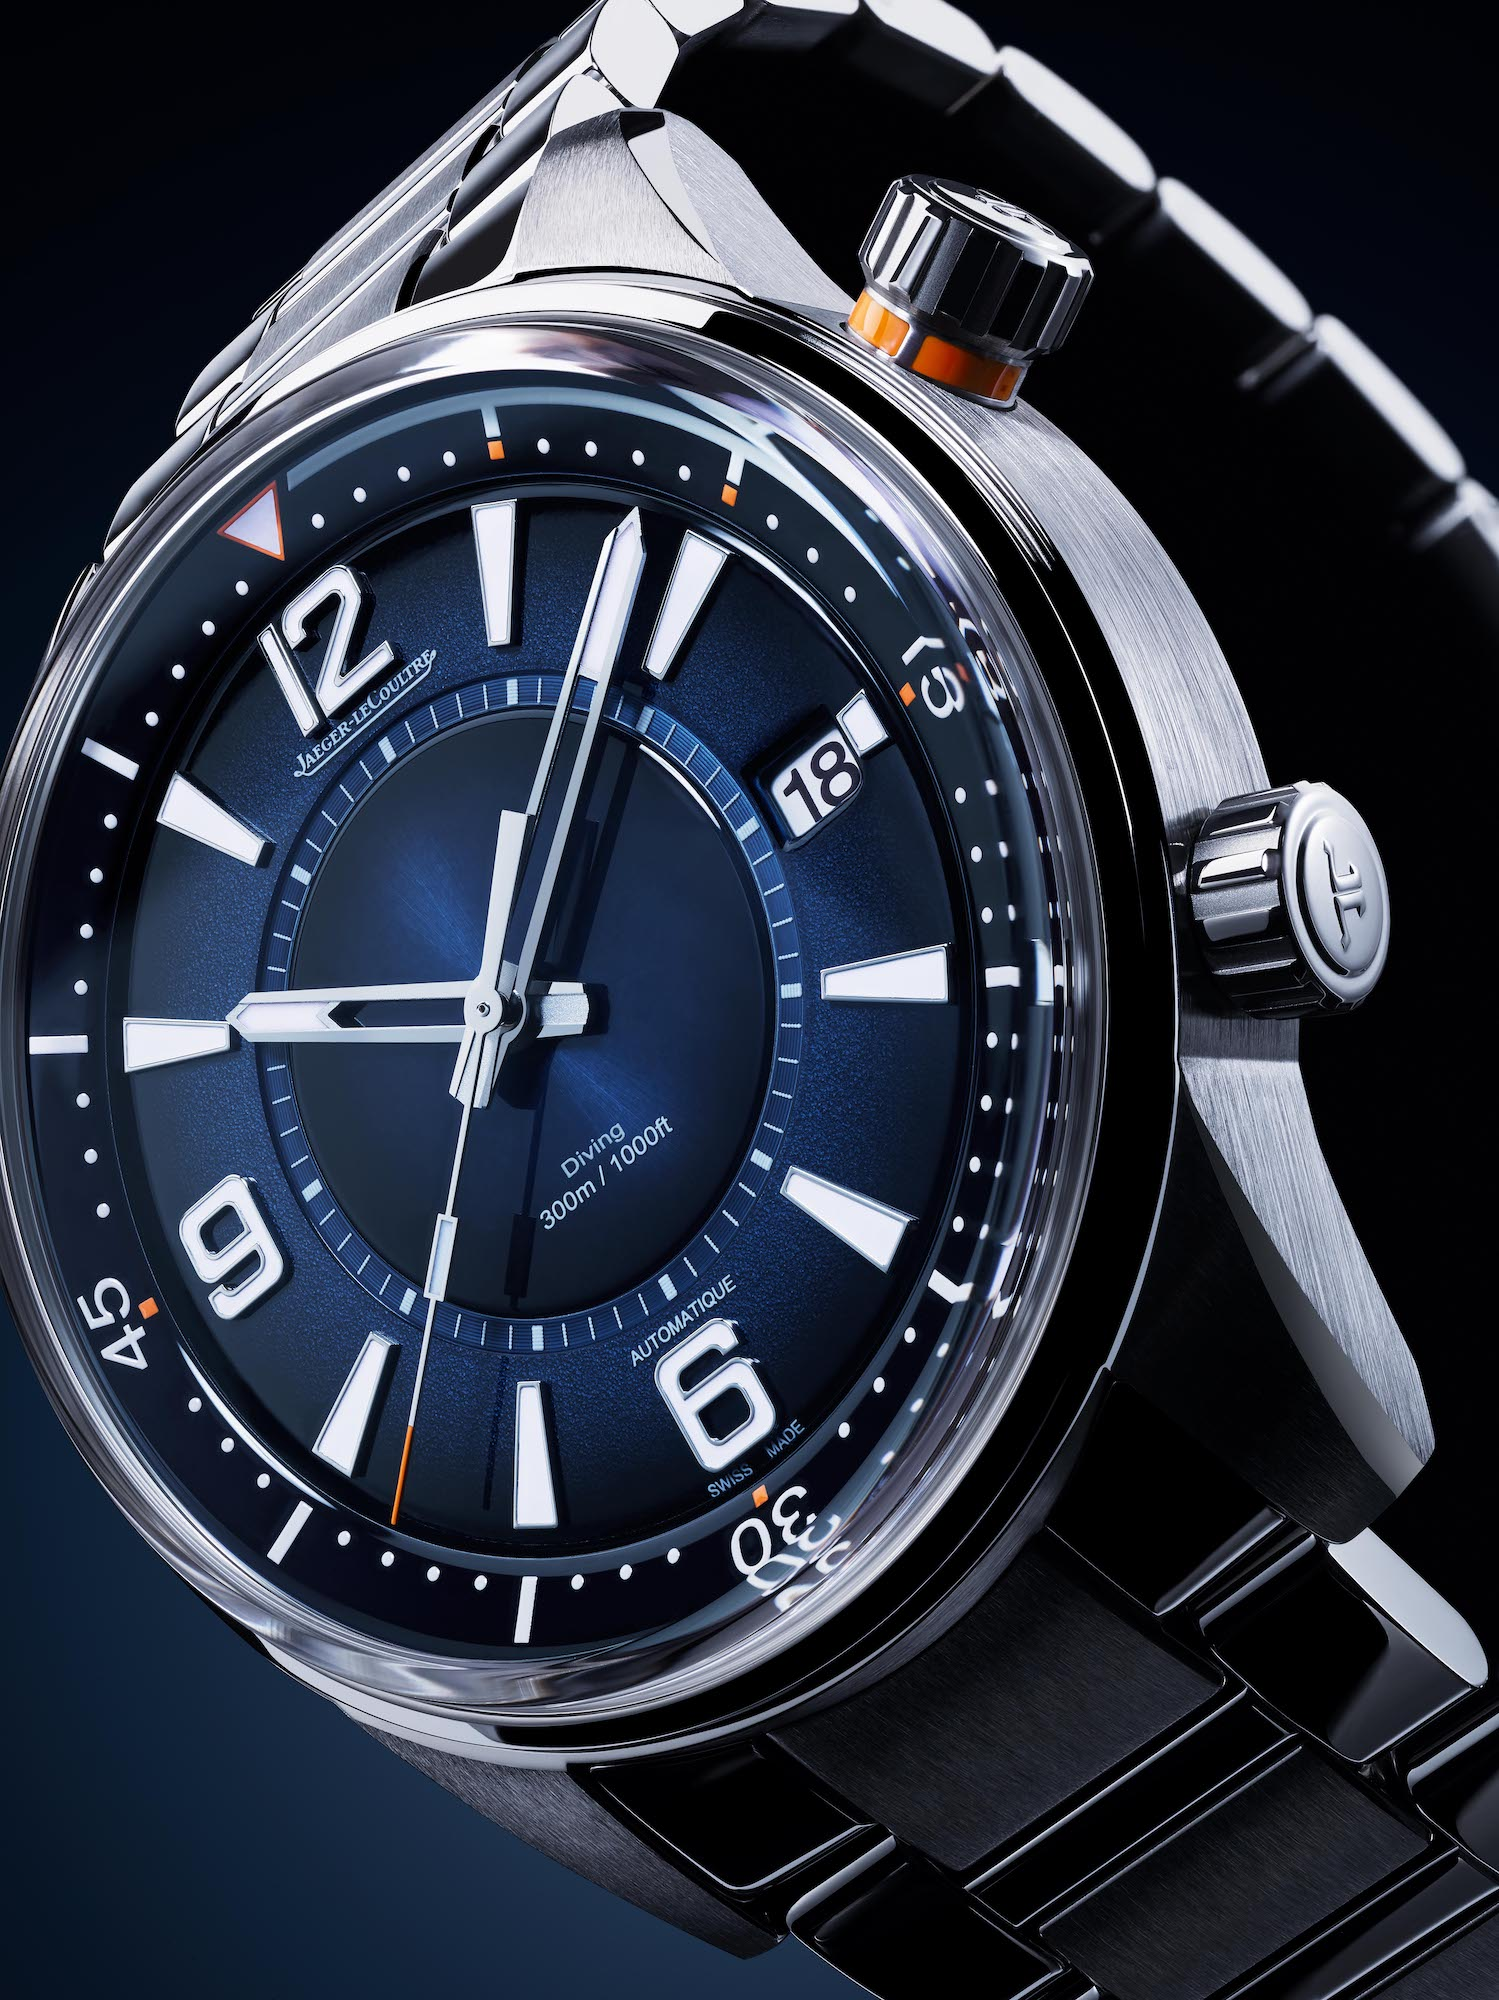 Jaeger-LeCoultre Polaris Mariner Date 9068180 lifestyle